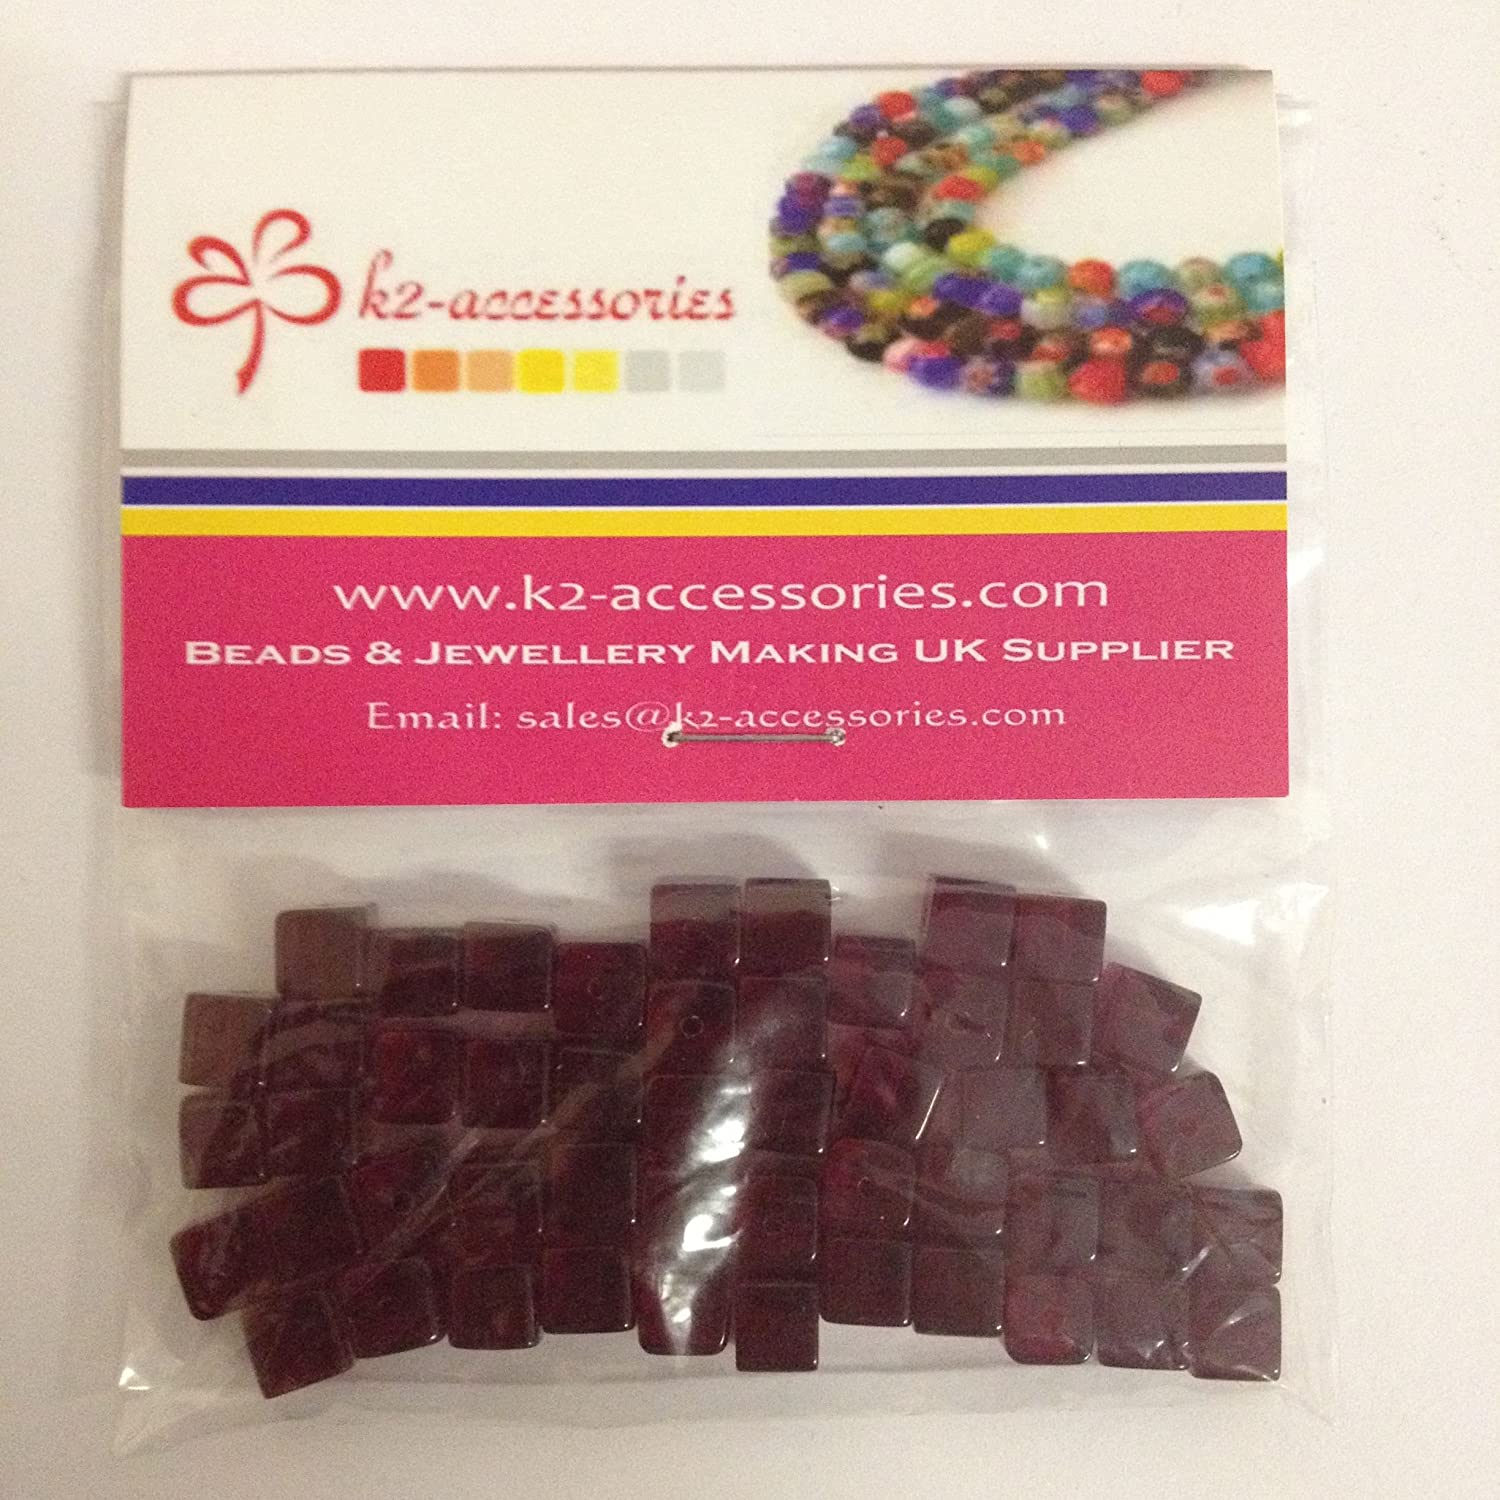 50 pieces 6mm Clipped Cube Style Value Crystal Glass Beads - Dark Red - A3047 k2-accessories